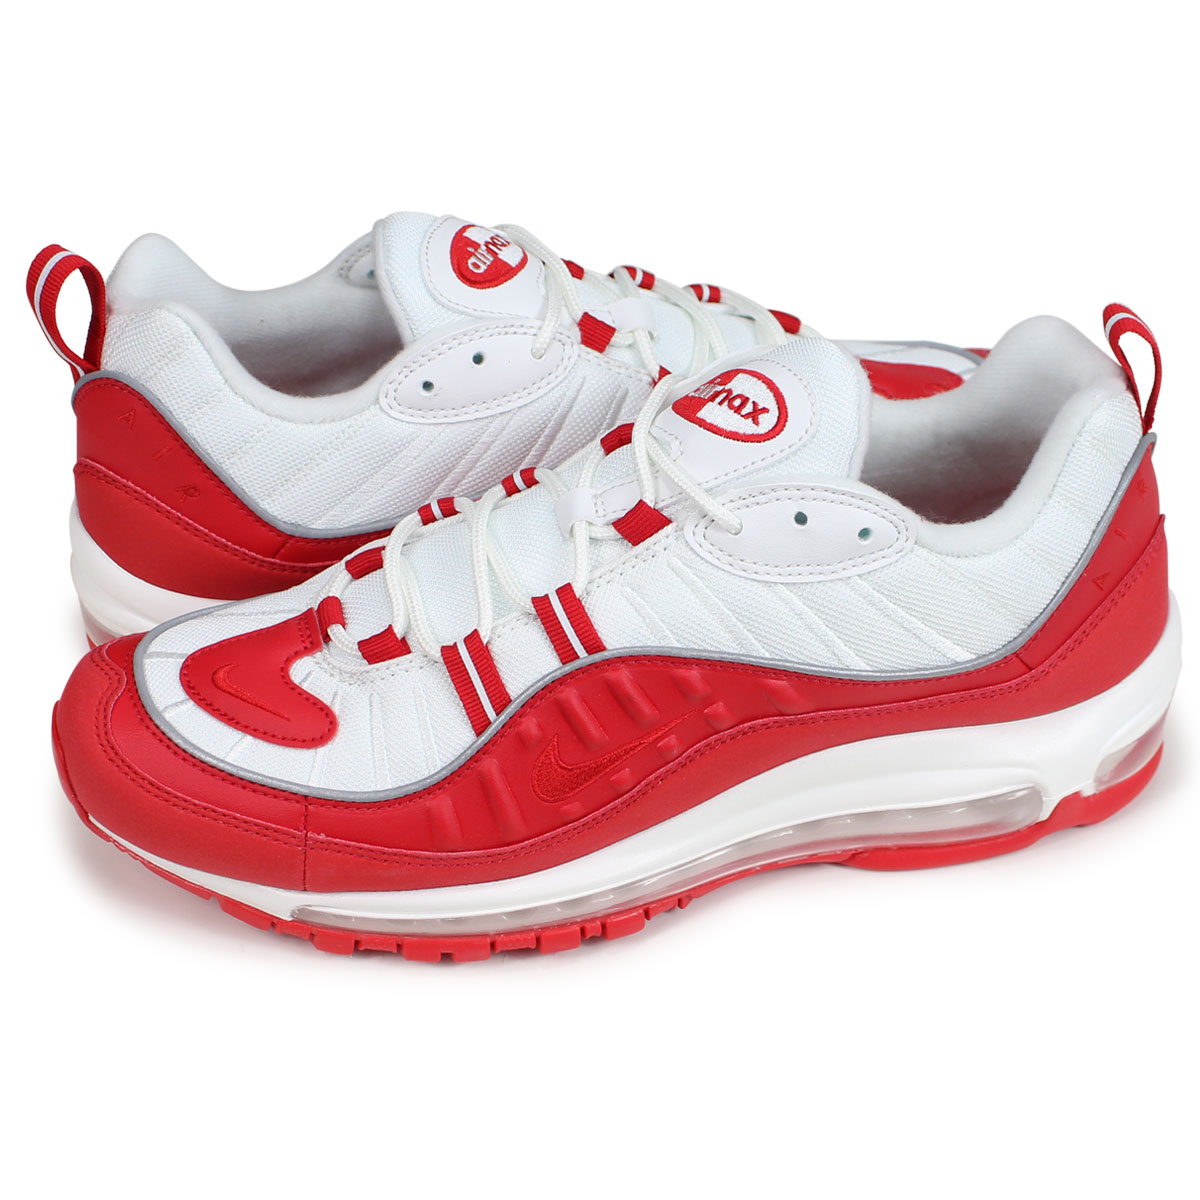 official photos 985f1 5f572 Nike NIKE Air Max 98 sneakers men AIR MAX 98 red 640,744-602 [191]